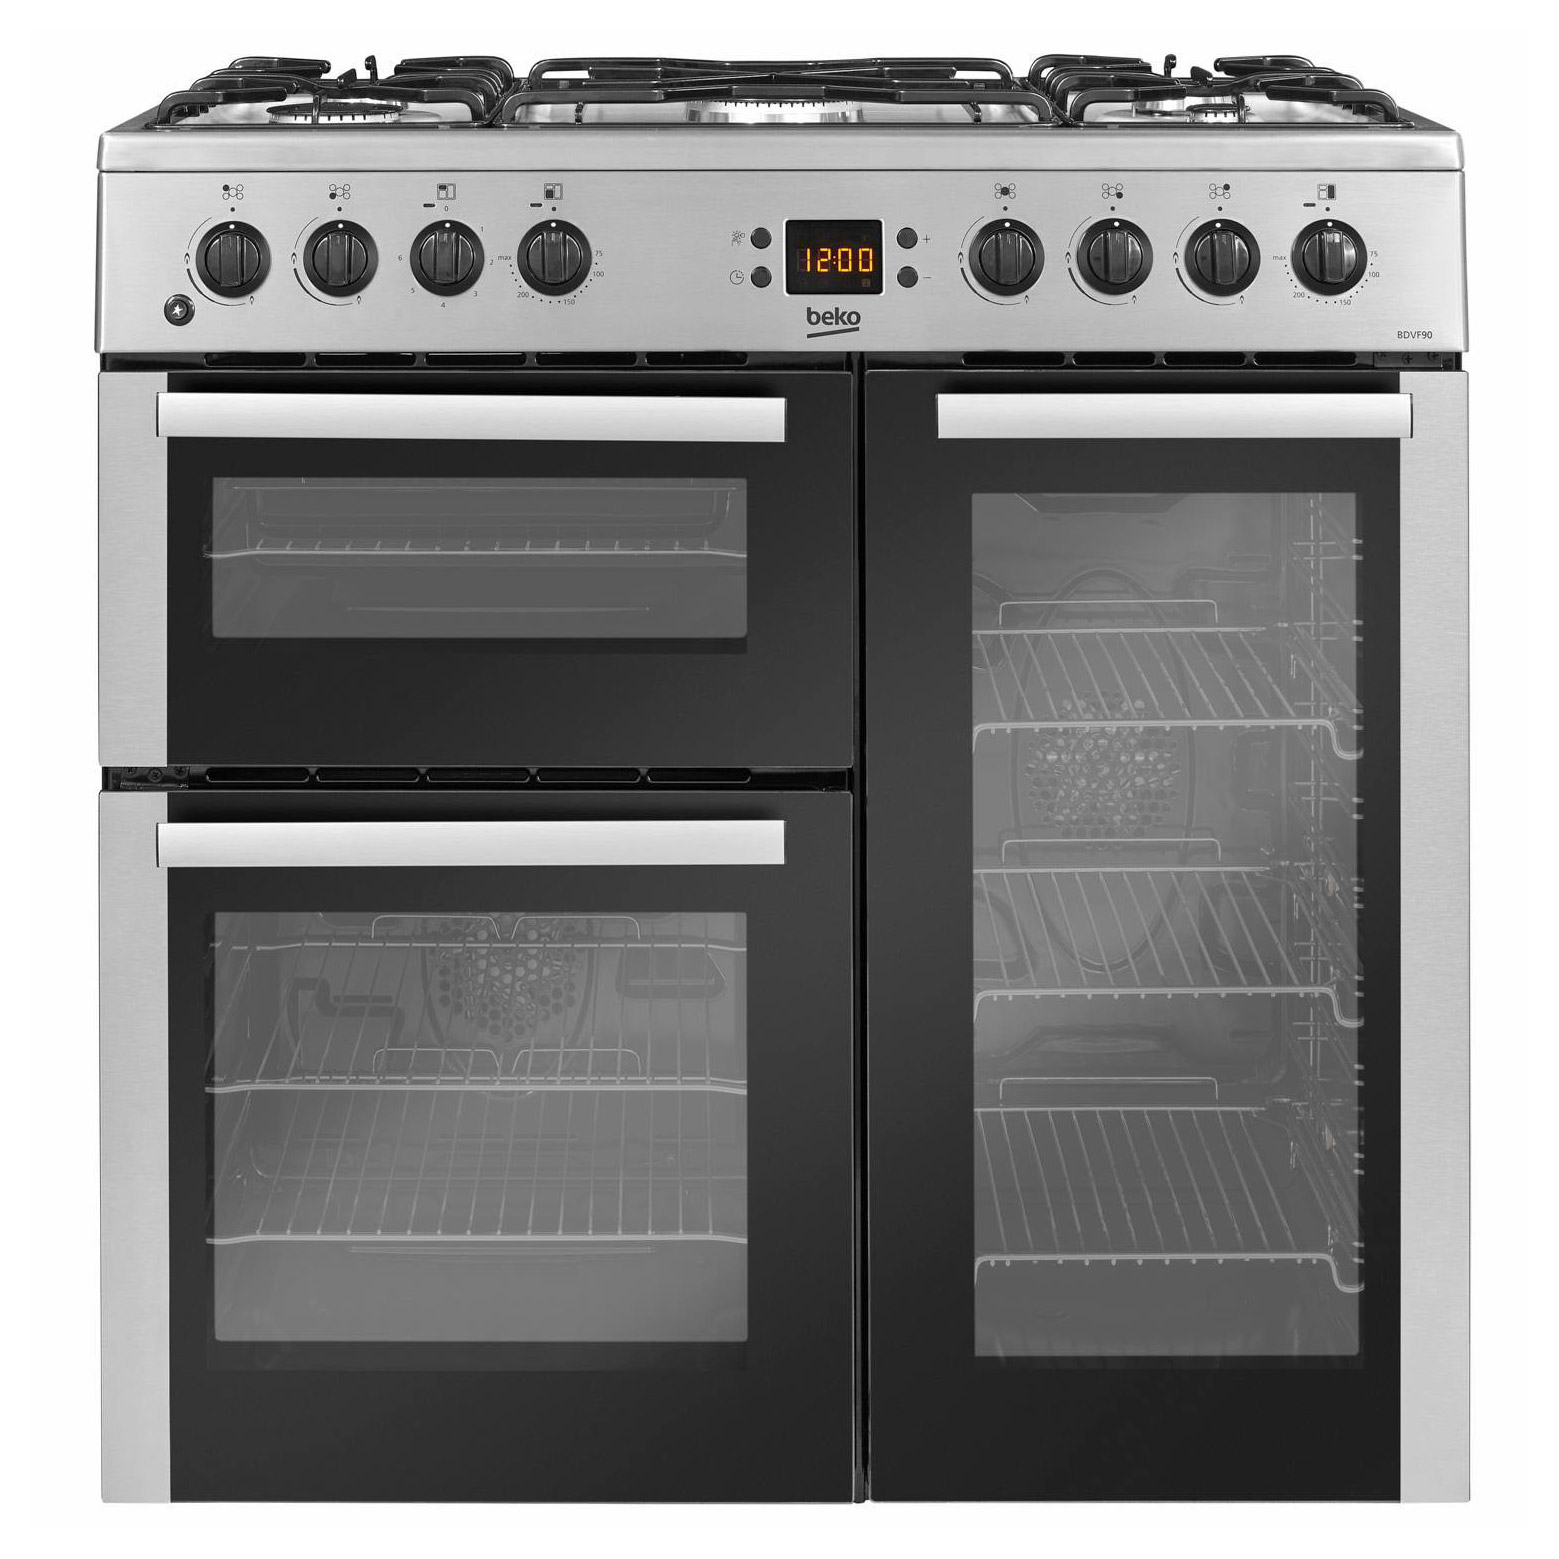 beko bdvf90x 90cm dual fuel cooker in st st double oven. Black Bedroom Furniture Sets. Home Design Ideas